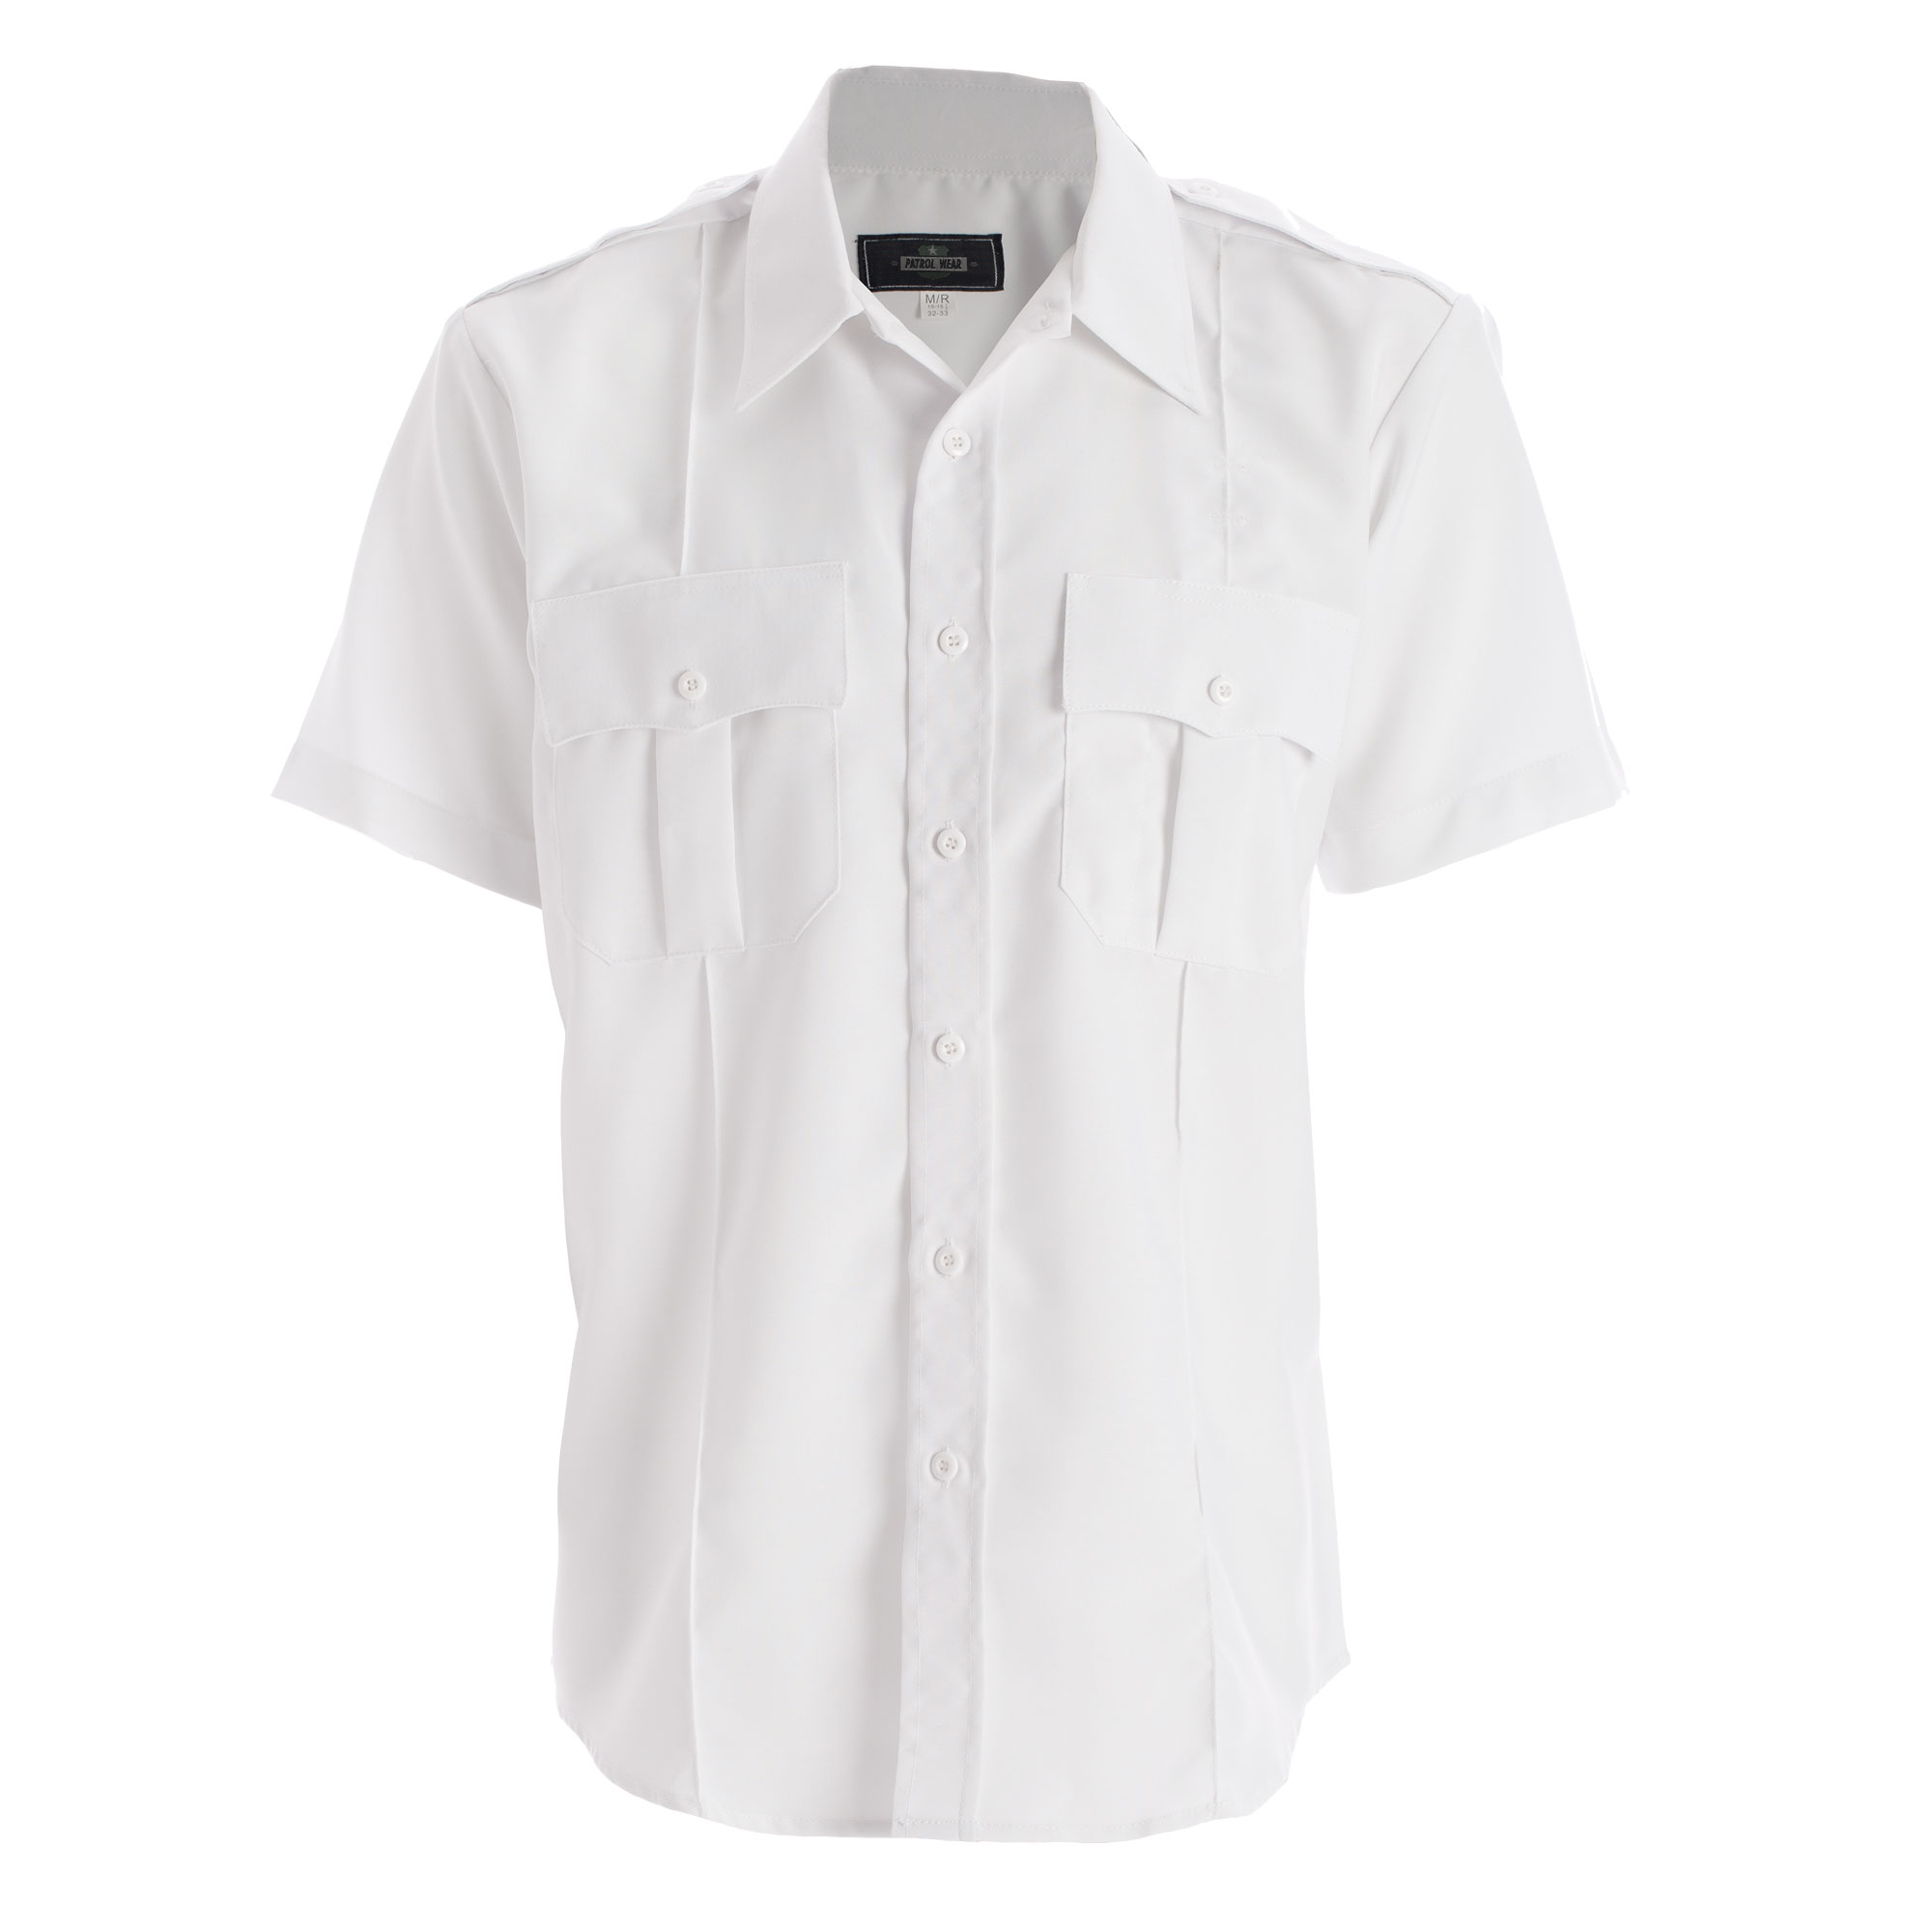 Short Sleeve Shirt - Womens, Tact Squad, Poly/Cotton -Tactsquad